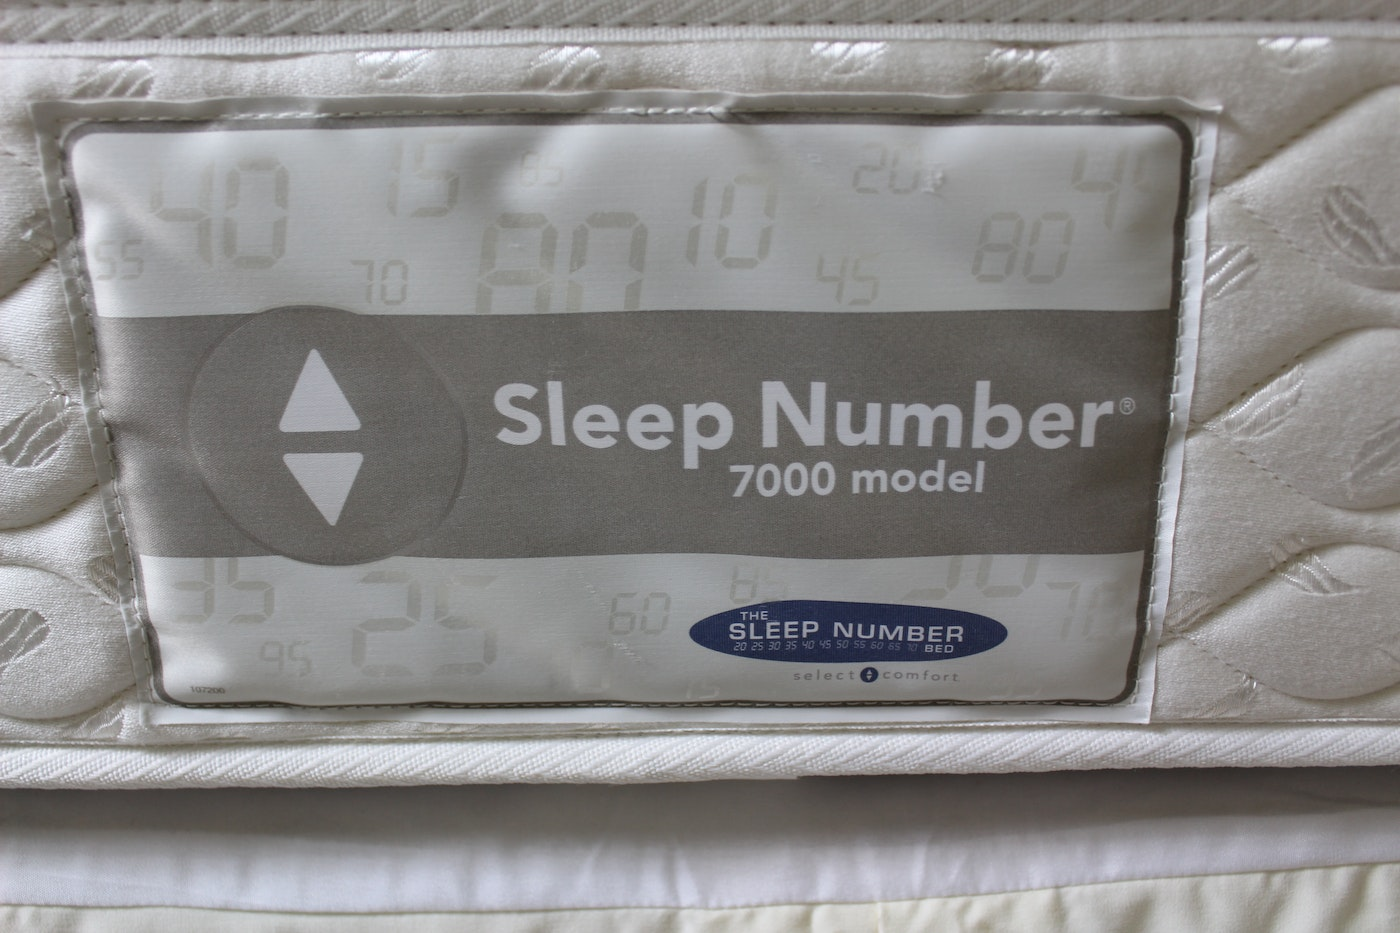 Sleep Number Bed Does It Fit In Any Frame